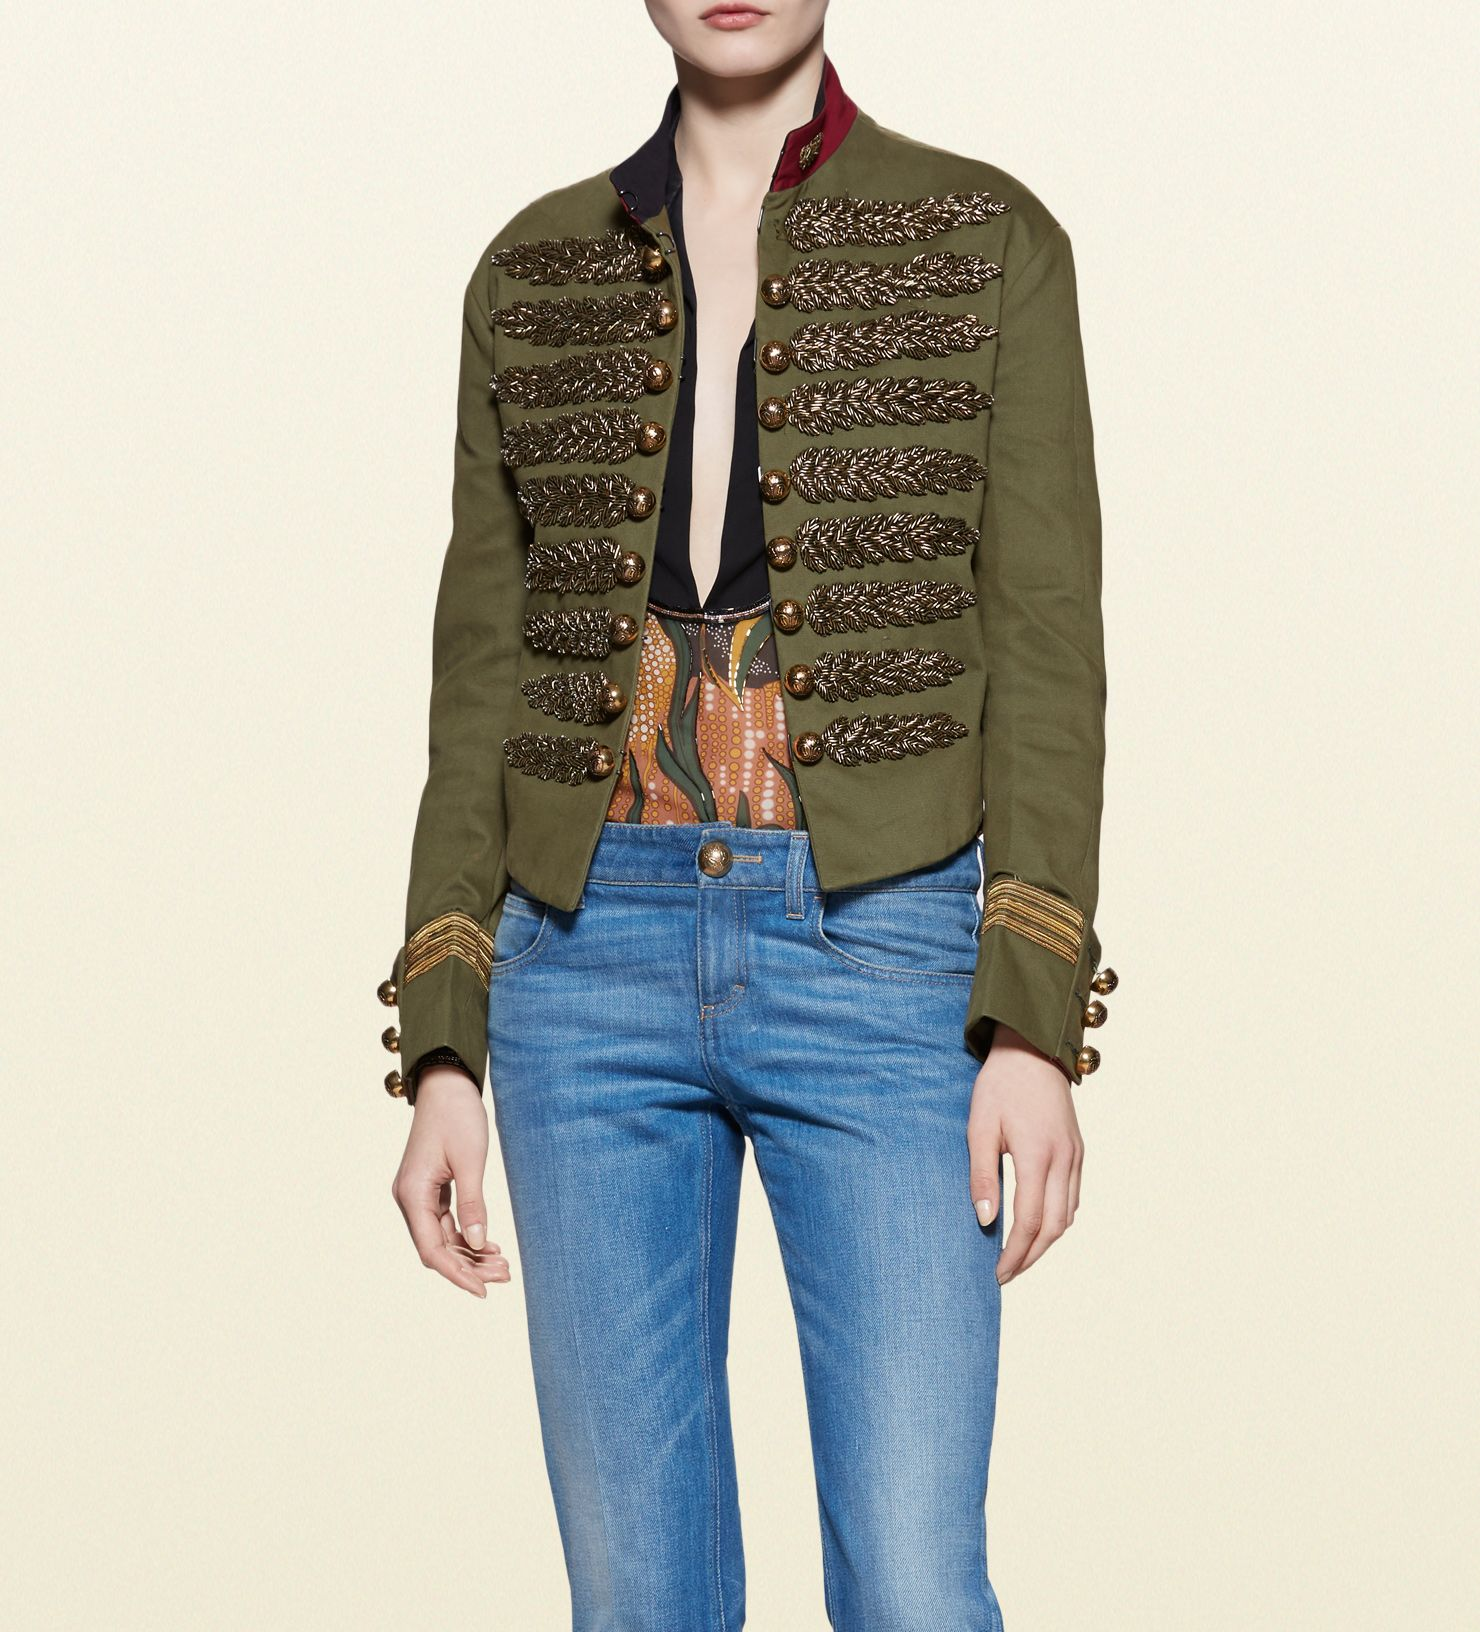 d6dbe29a8 Gucci - brushed cotton embroidered military jacket 380677ZEC503622 ...